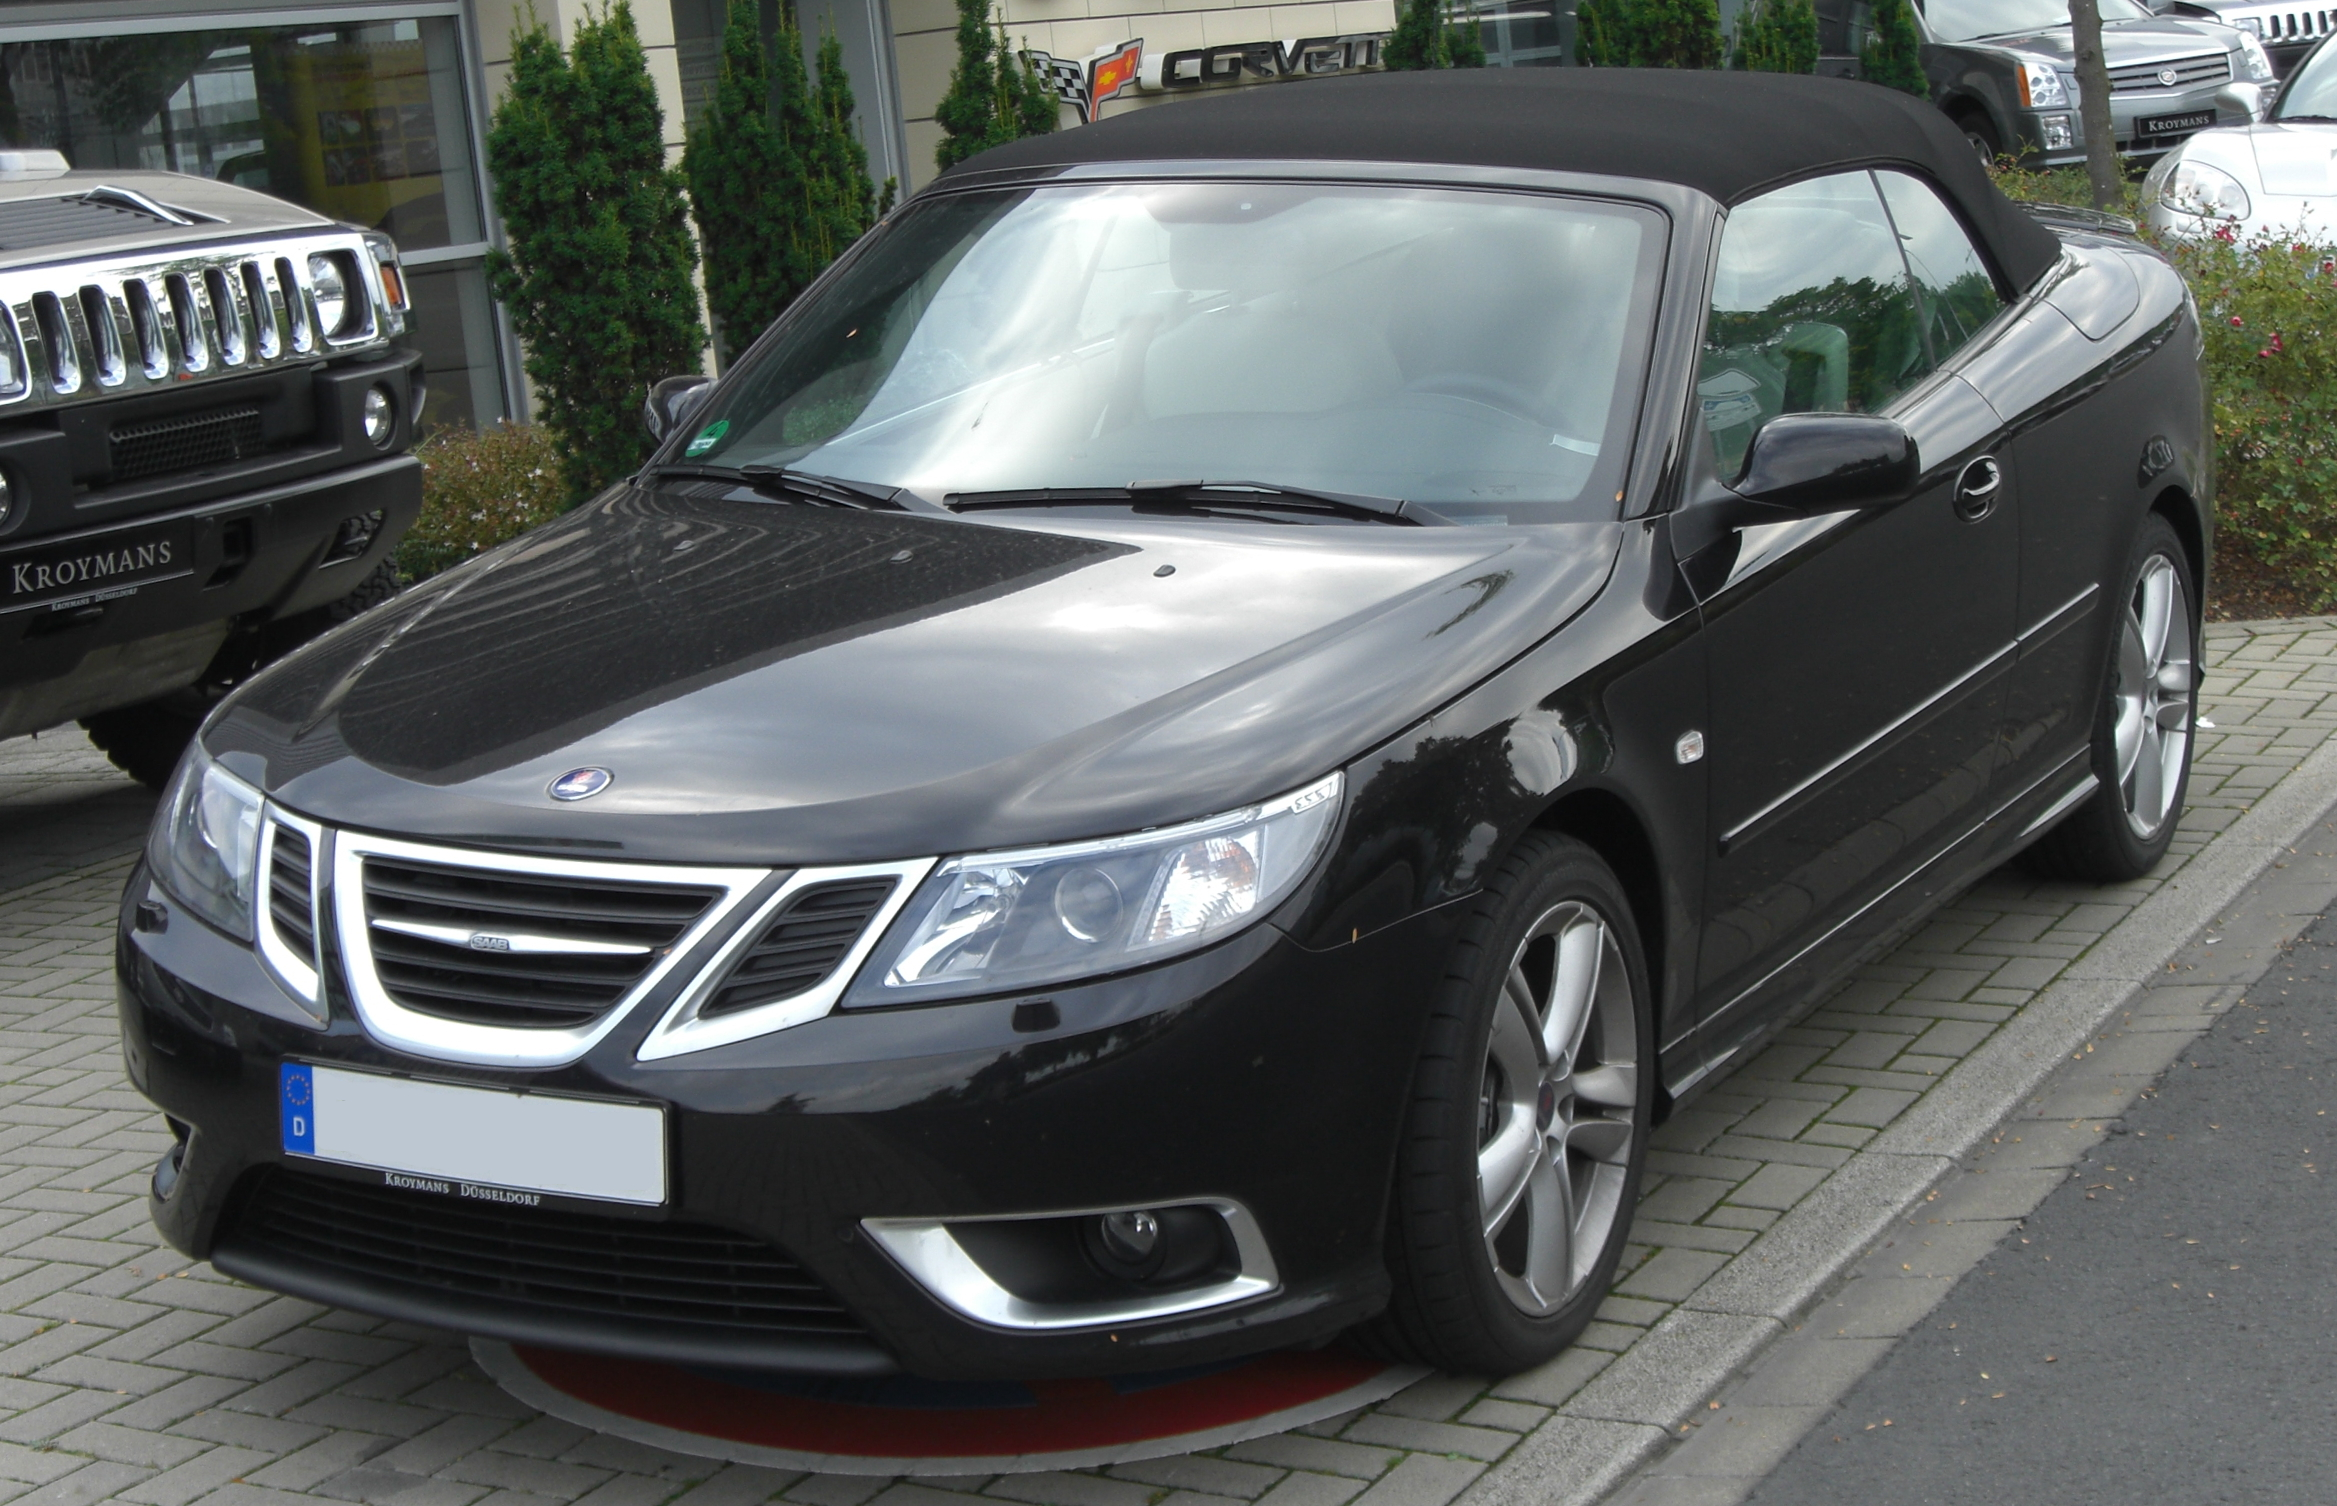 file saab 9 3 cabrio 1 9 ttid aero facelift front jpg wikimedia commons. Black Bedroom Furniture Sets. Home Design Ideas